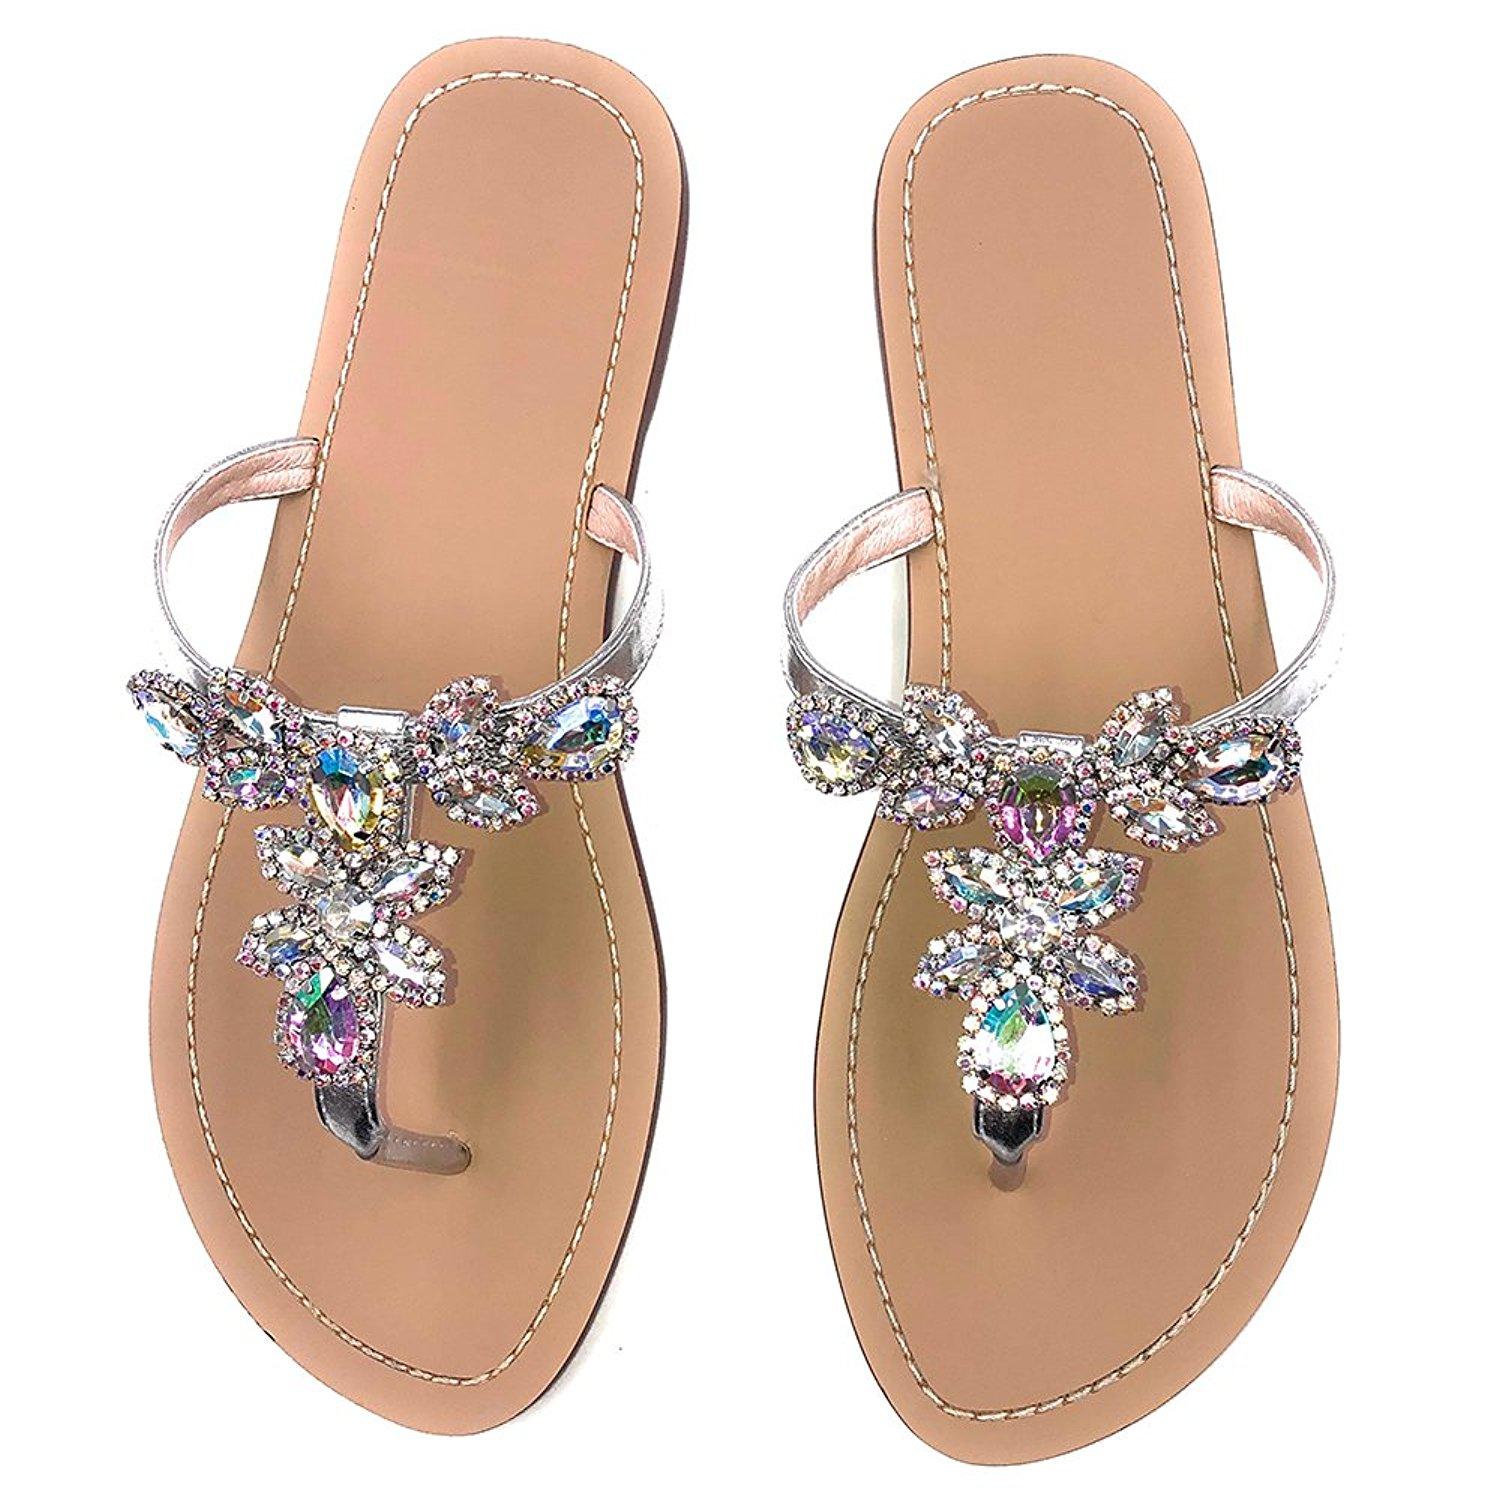 5cb8cc5e9 Get Quotations · azmodo Women s Silver Jeweled Hand Crafted Crystal Flip  Flops Rhinestones Flats Sandals Y22